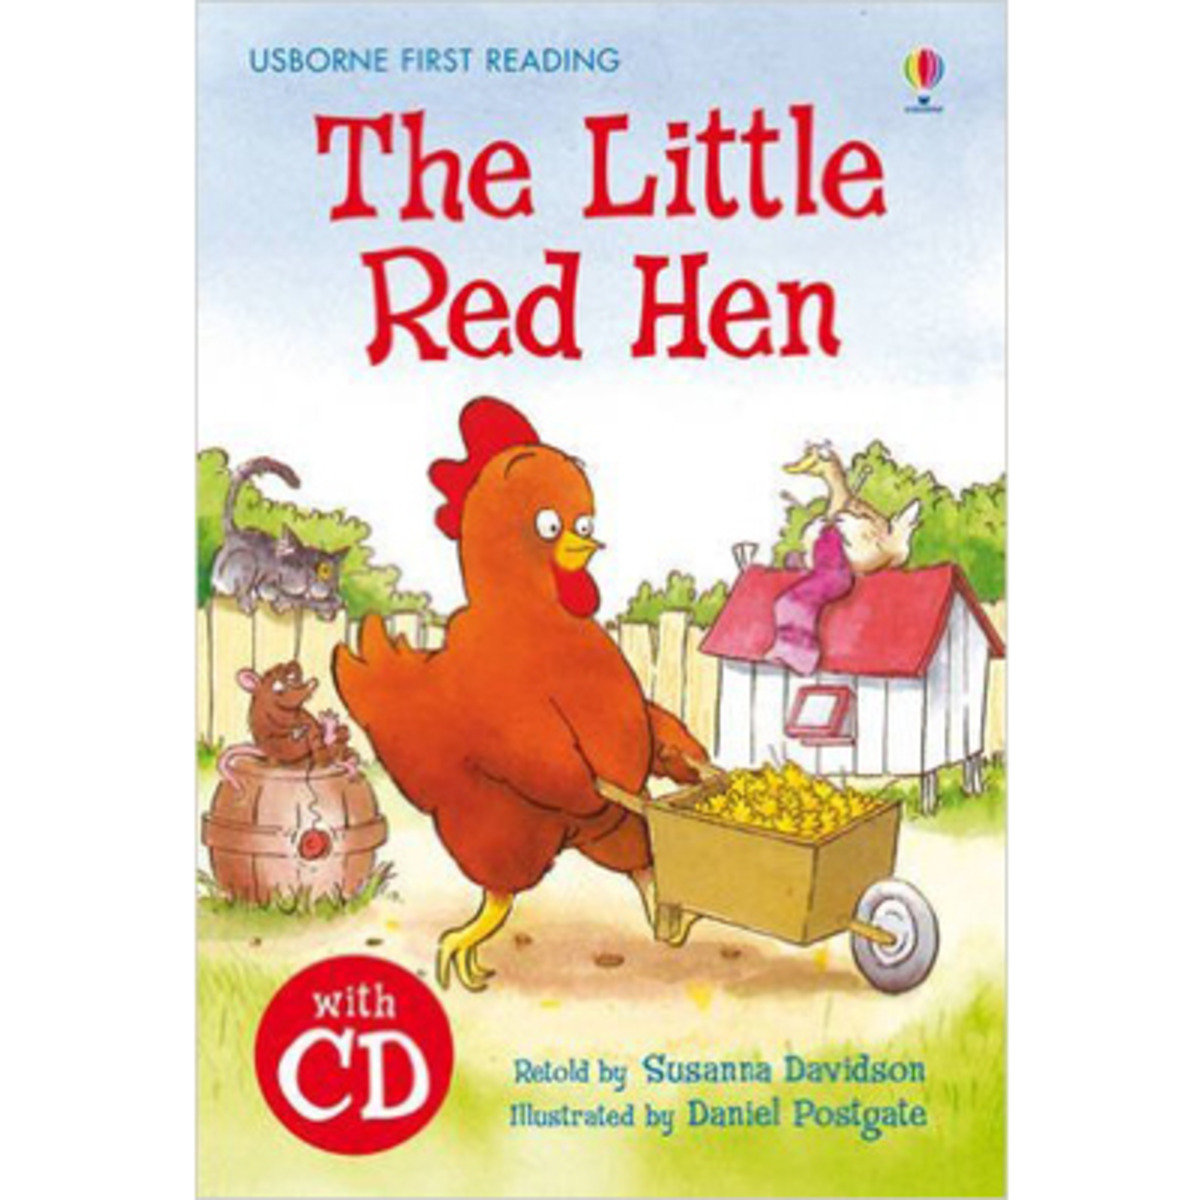 The Little Red Hen-First Reading with CD